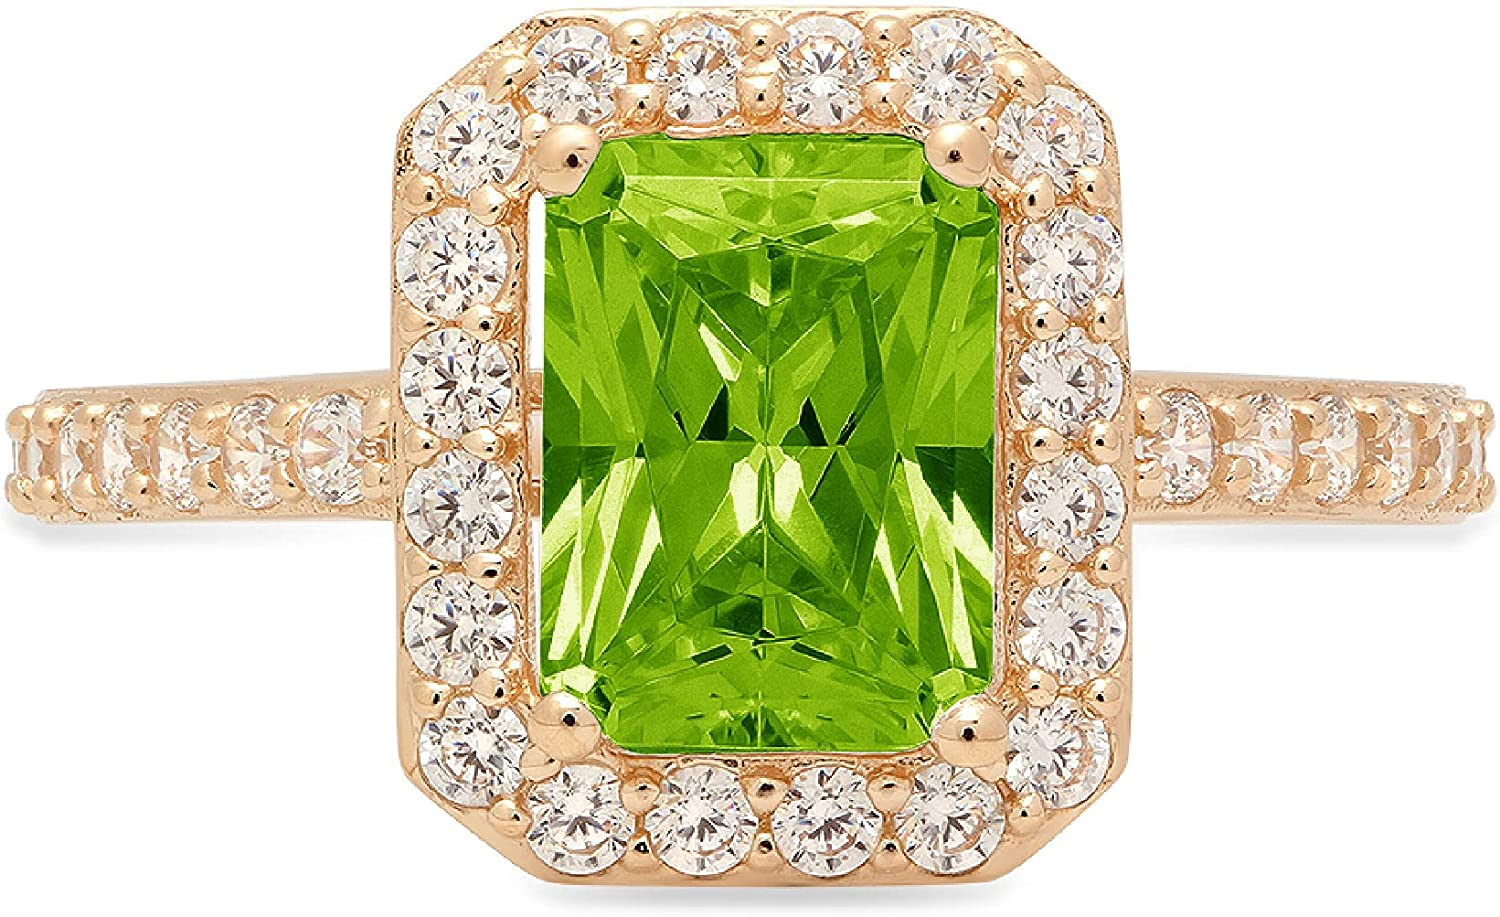 2.07ct Brilliant Emerald Cut Solitaire Accent Halo Genuine Flawless Natural Green Peridot Gemstone Engagement Promise Anniversary Bridal Wedding Ring Solid 18K Yellow Gold